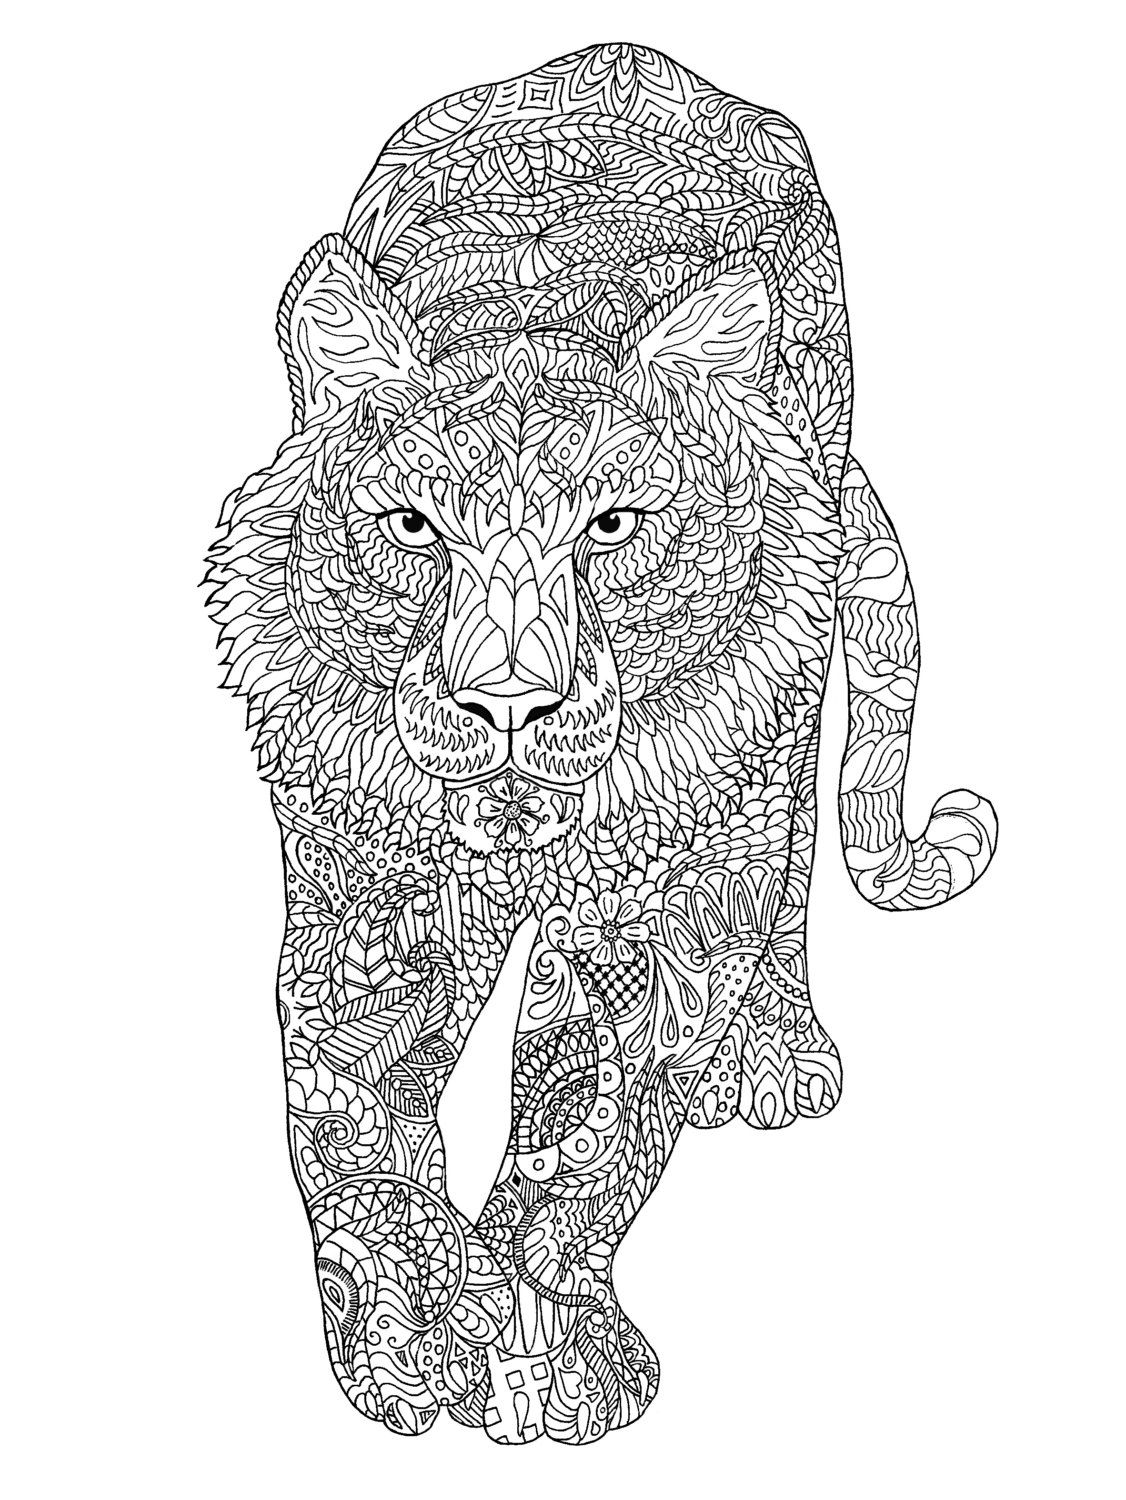 Tiger Coloring Page By Colormefreelife On Etsy